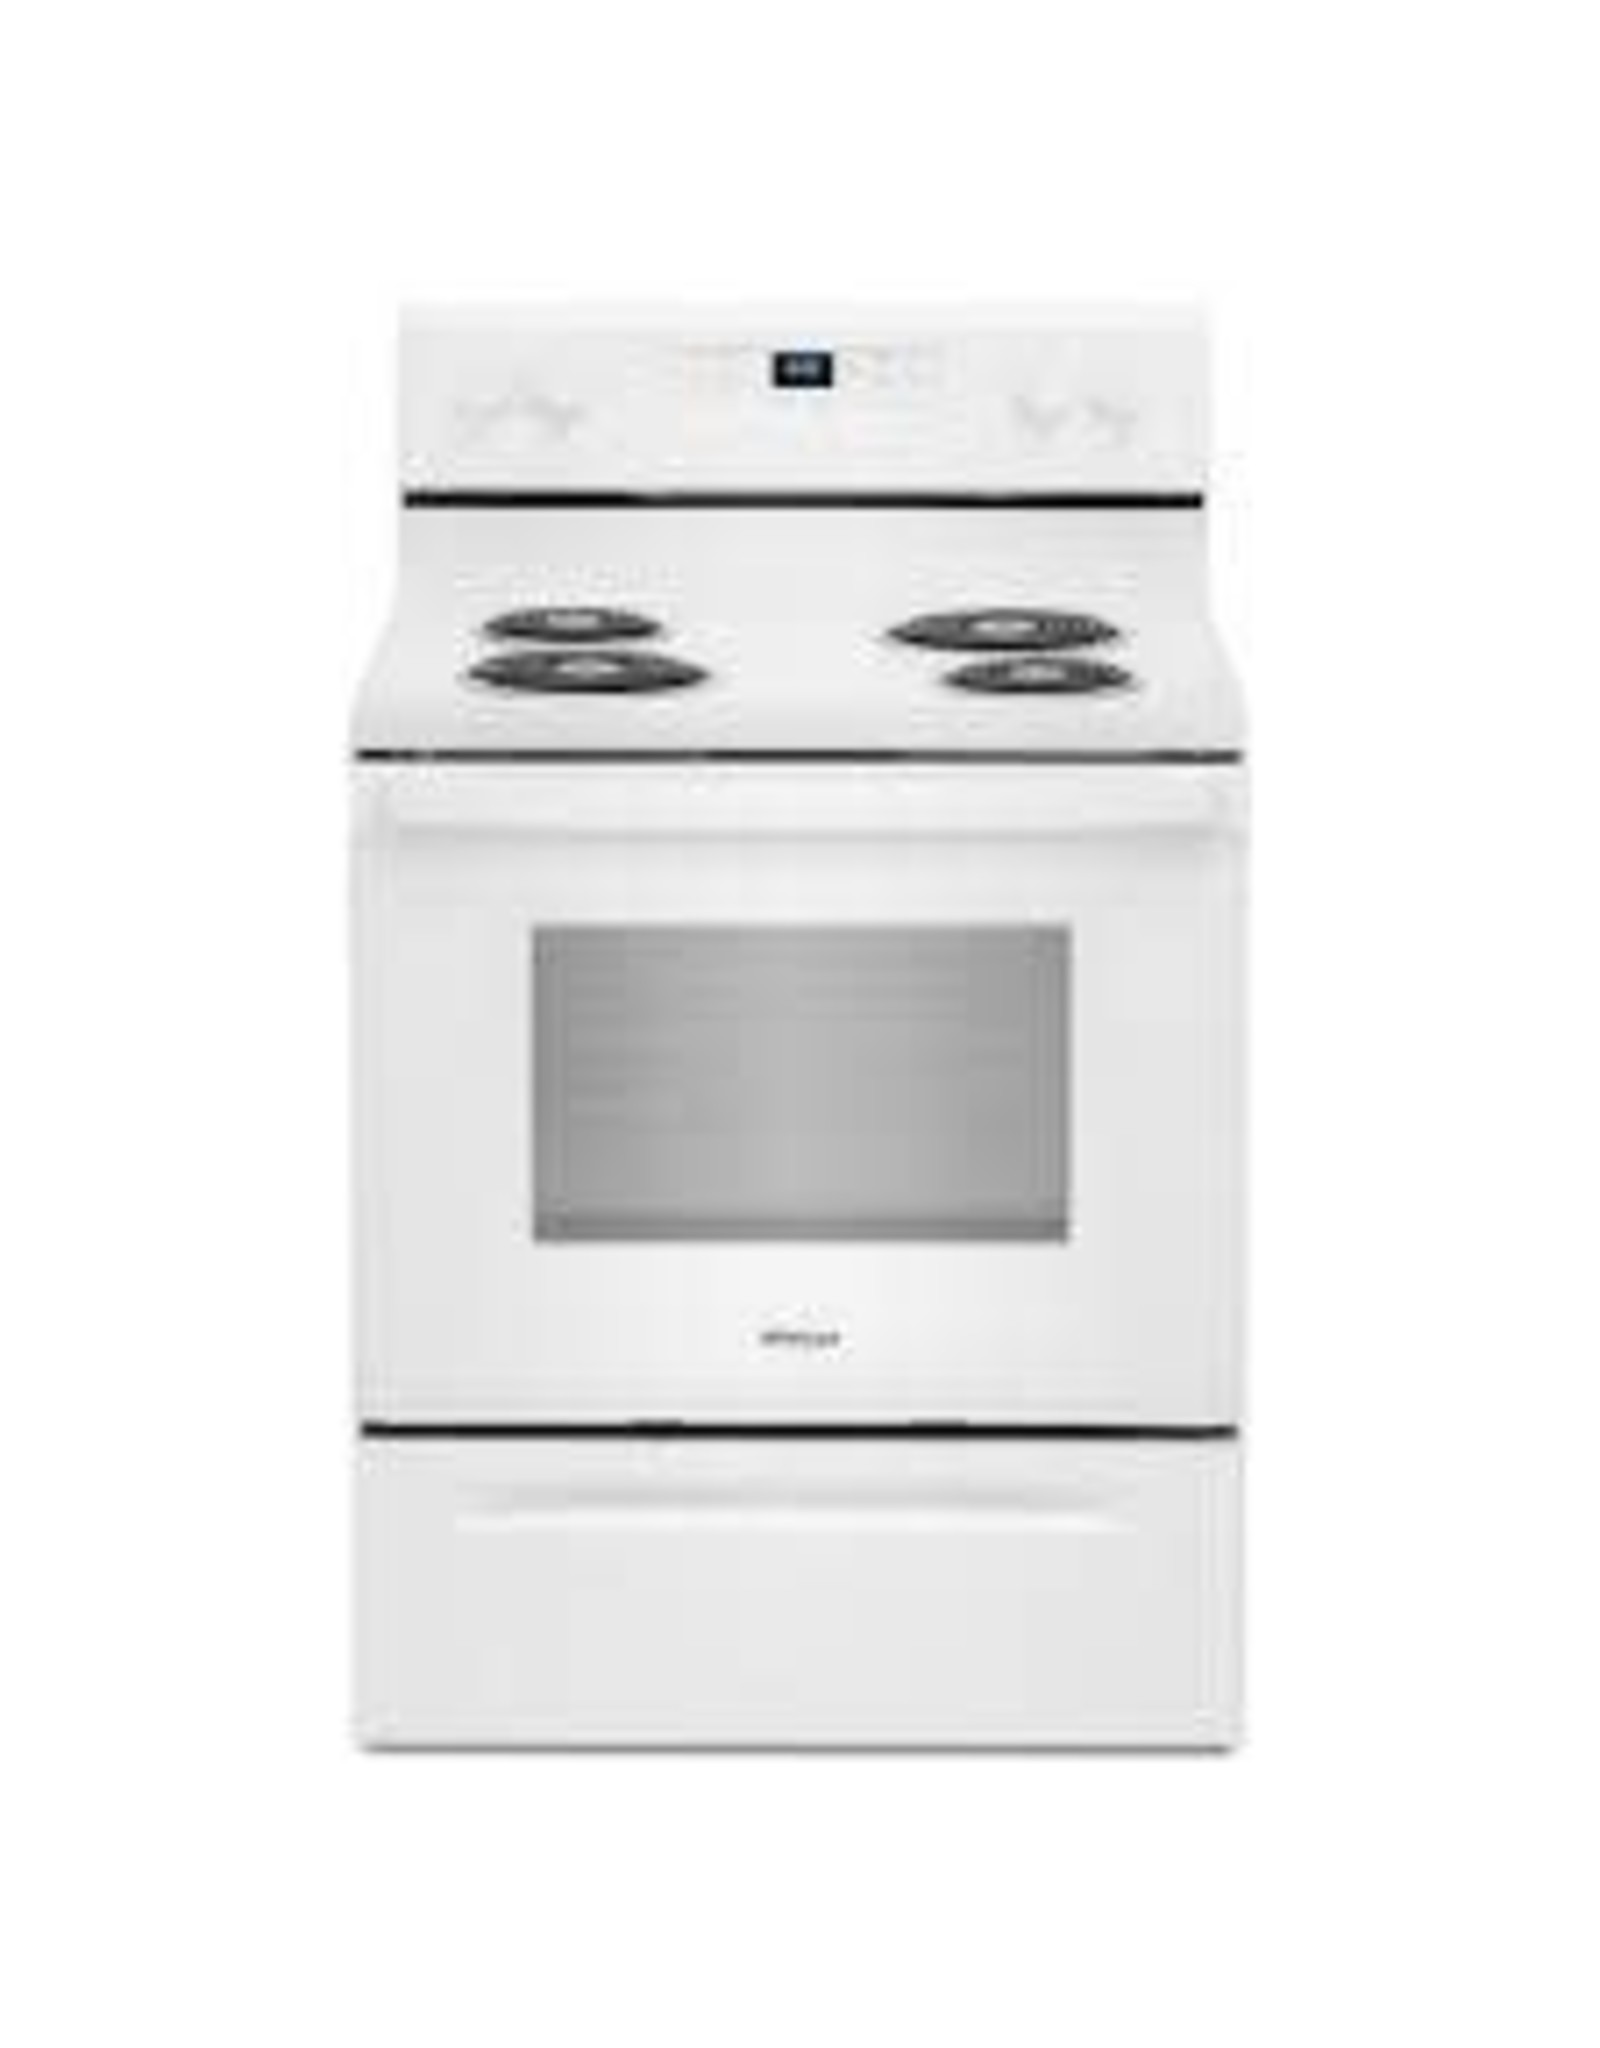 WHIRLPOOL WFC150M0JW 30 in. 4.8 cu. ft. 4-Burner Electric Range with Keep Warm Setting in White with Storage Drawer